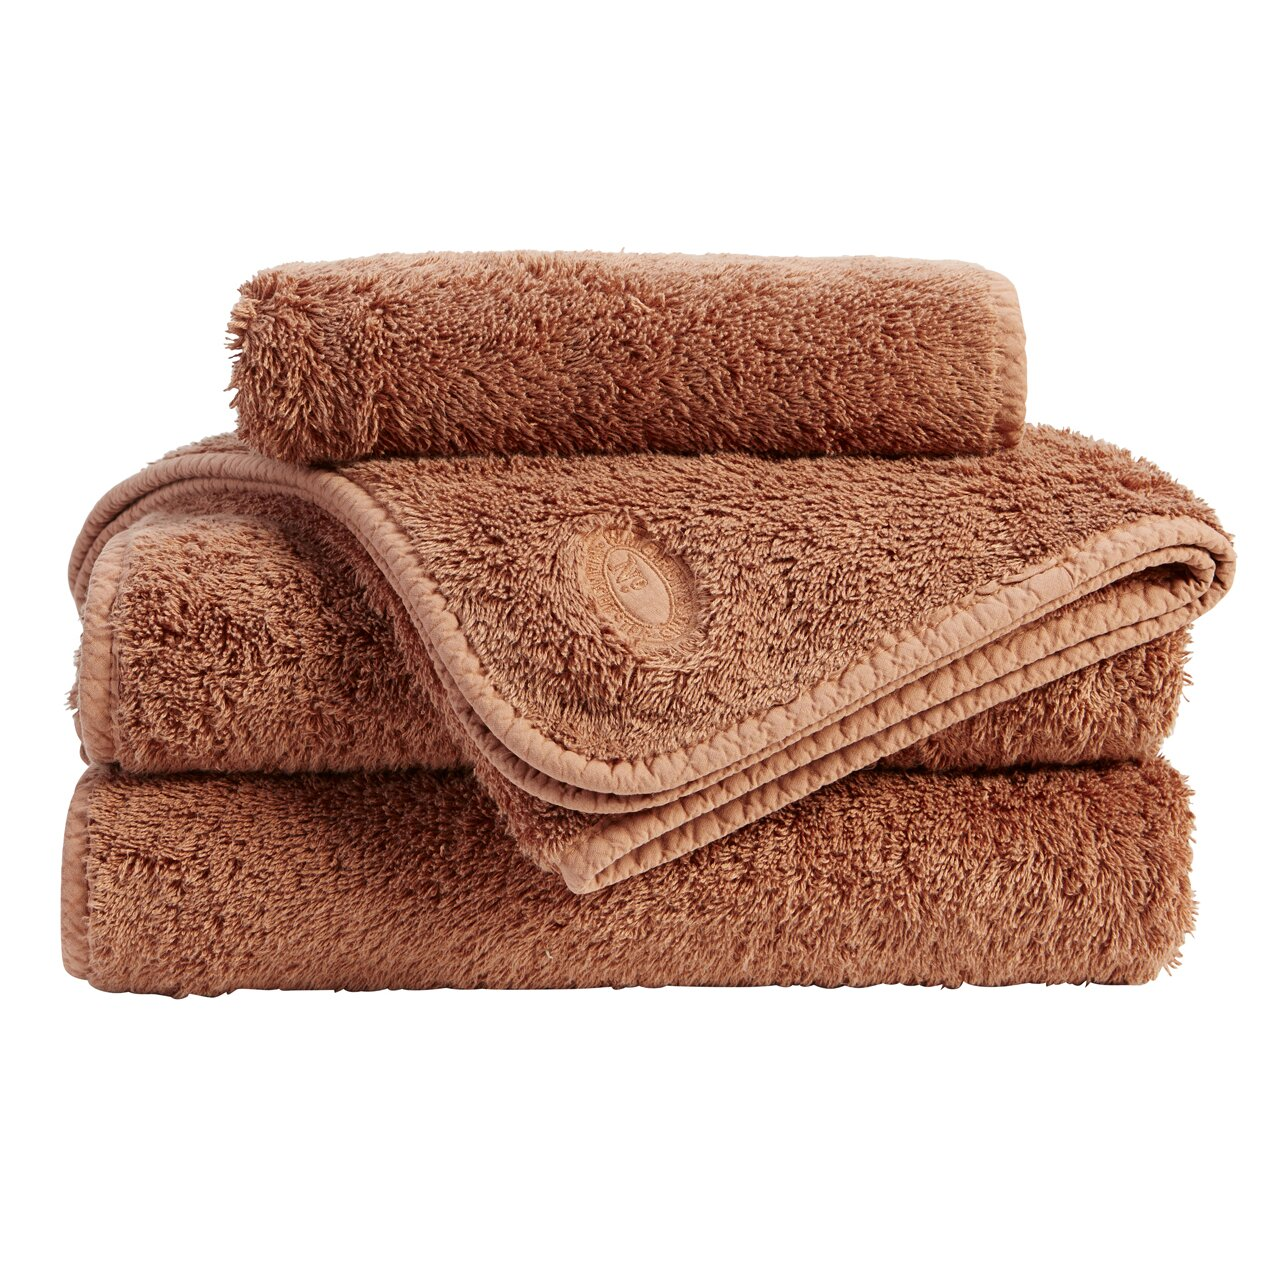 https://secure.img1.wfrcdn.com/lf/187/hash/10107/16572564/1/Royal-Turkish-US-Bath-Towel.jpg